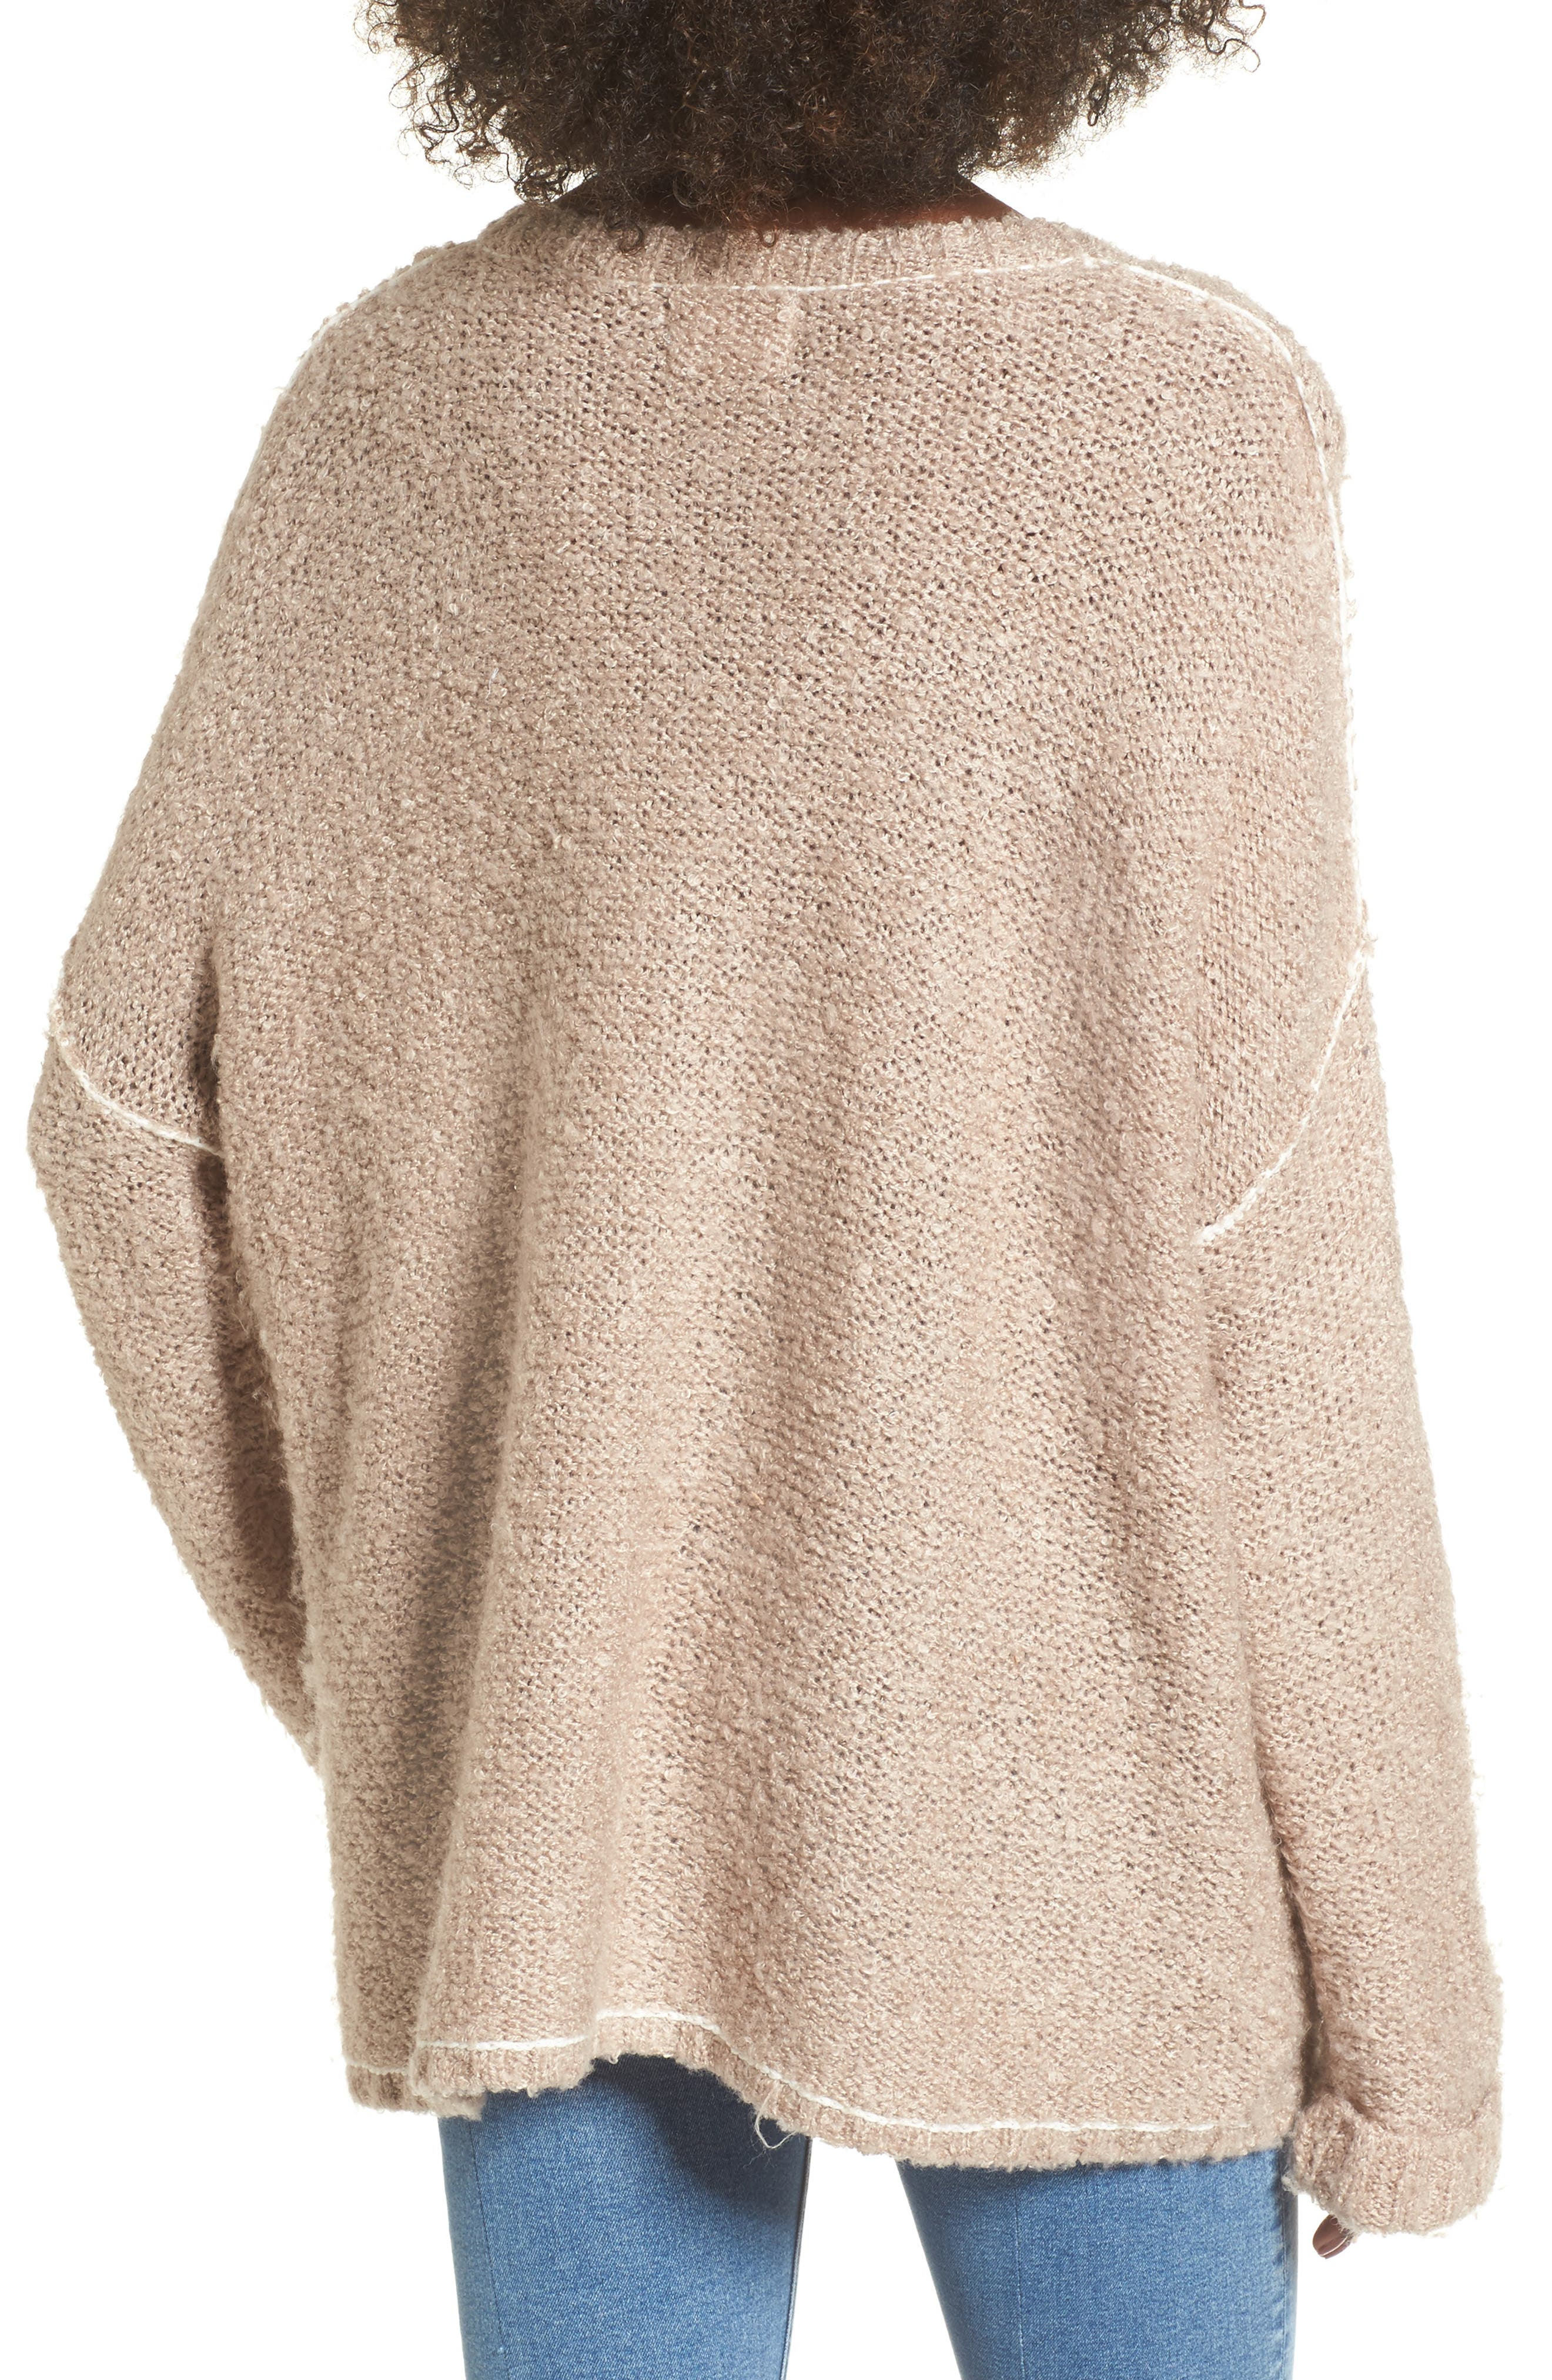 Voyage Knit Sweater,                             Alternate thumbnail 2, color,                             253